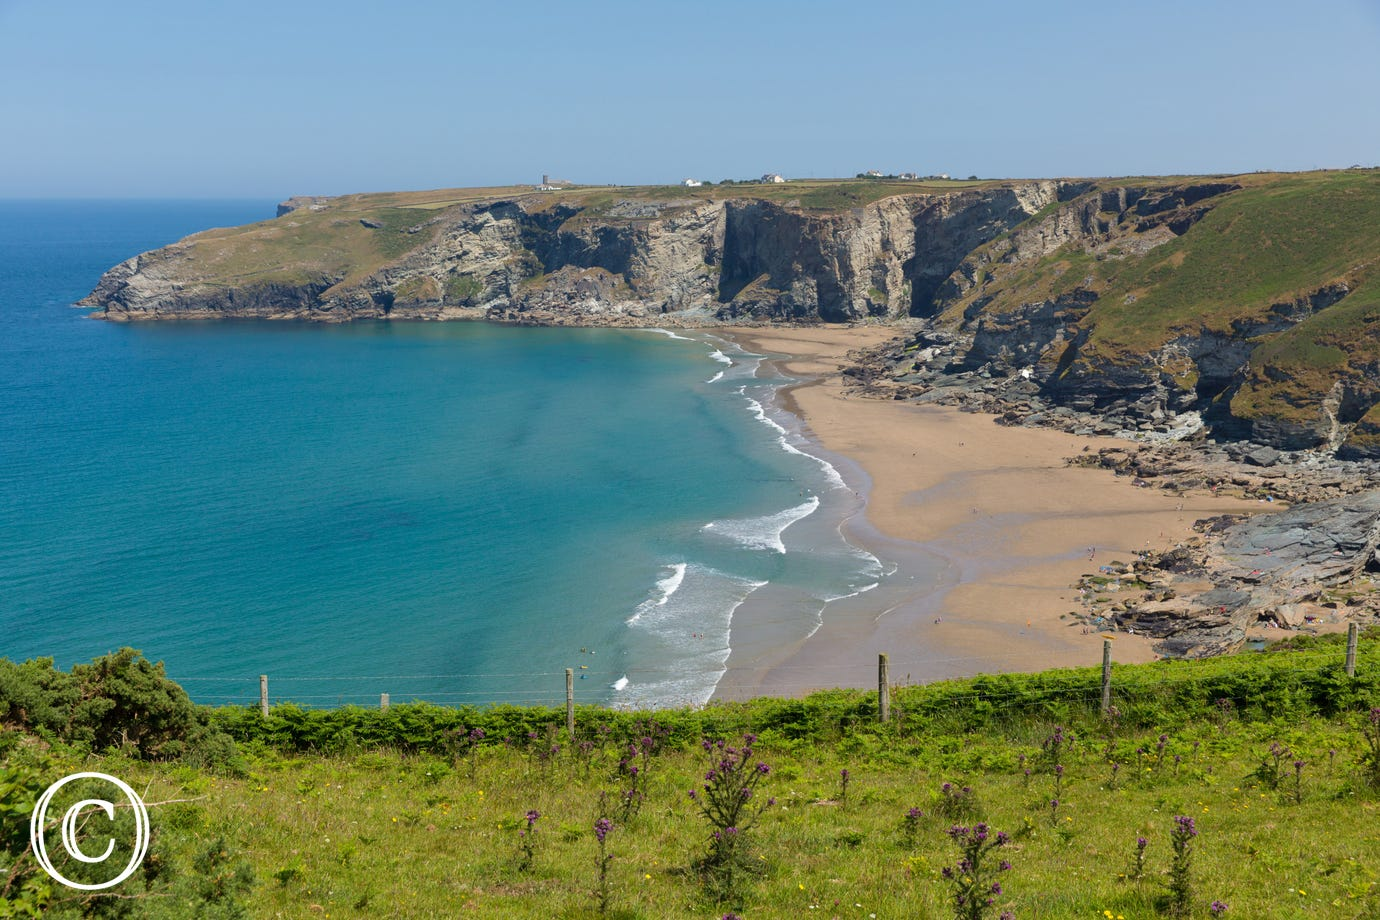 Only a 12 minute drive to Trebarwith Strand beach